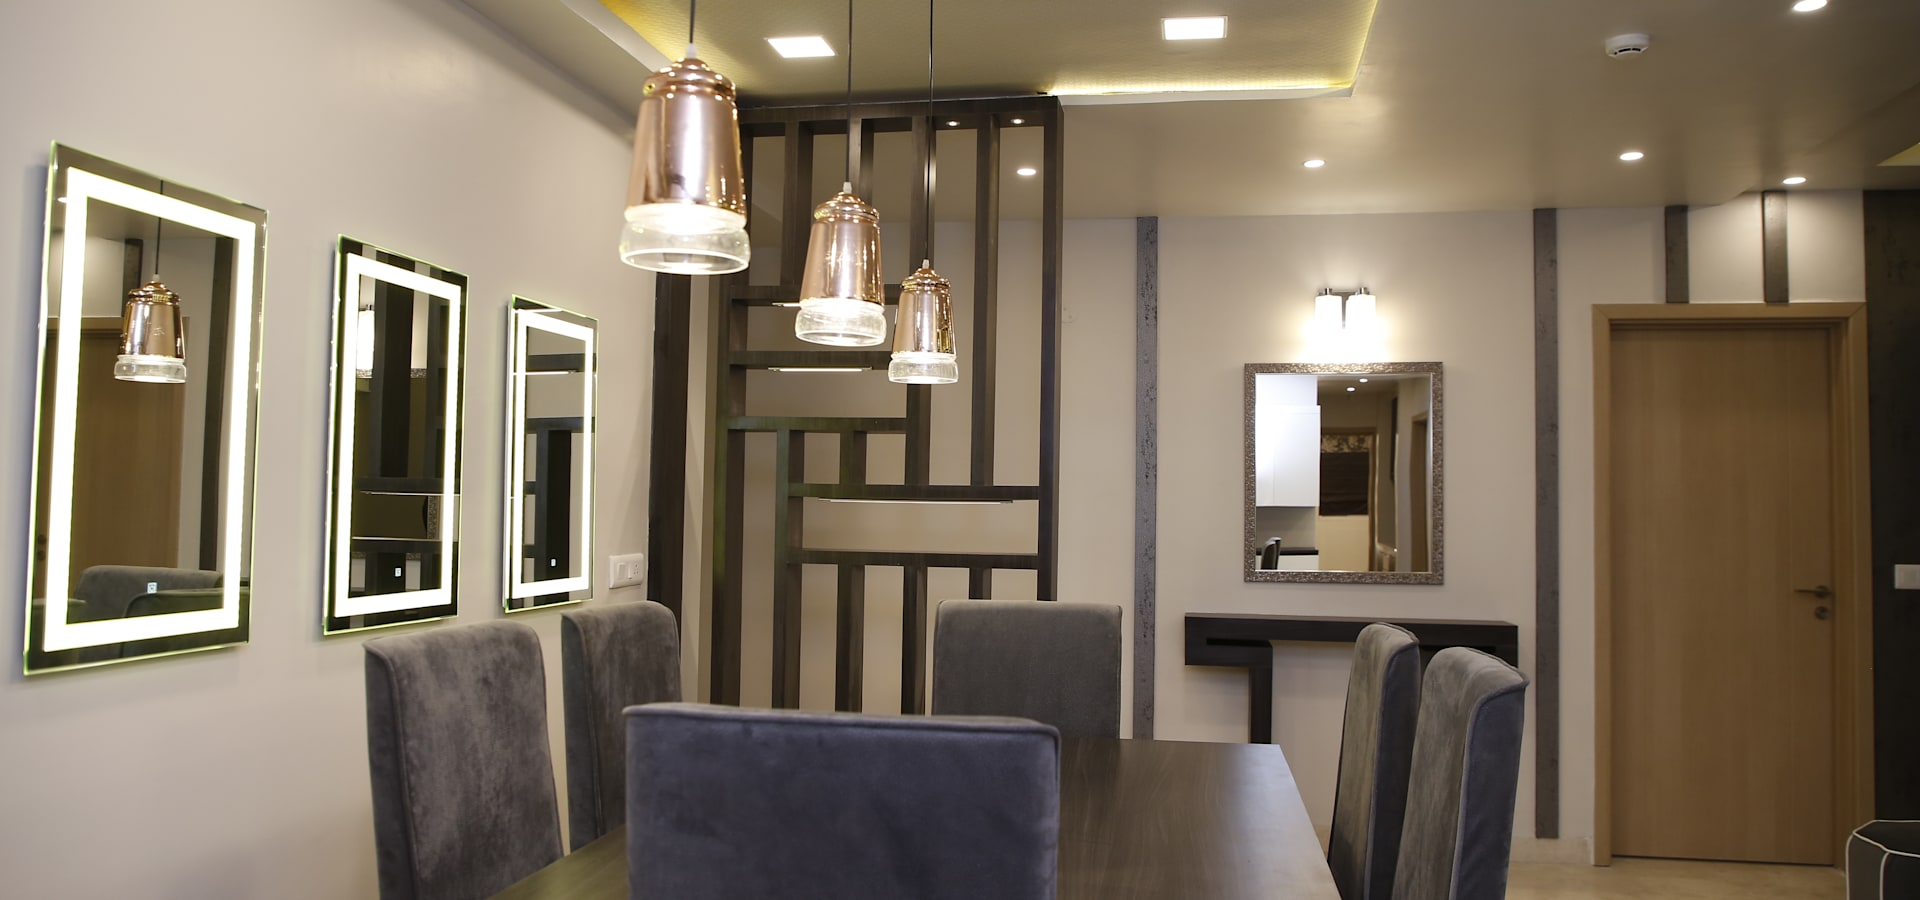 Luxury Apartment Bar And Lounge Room Homify